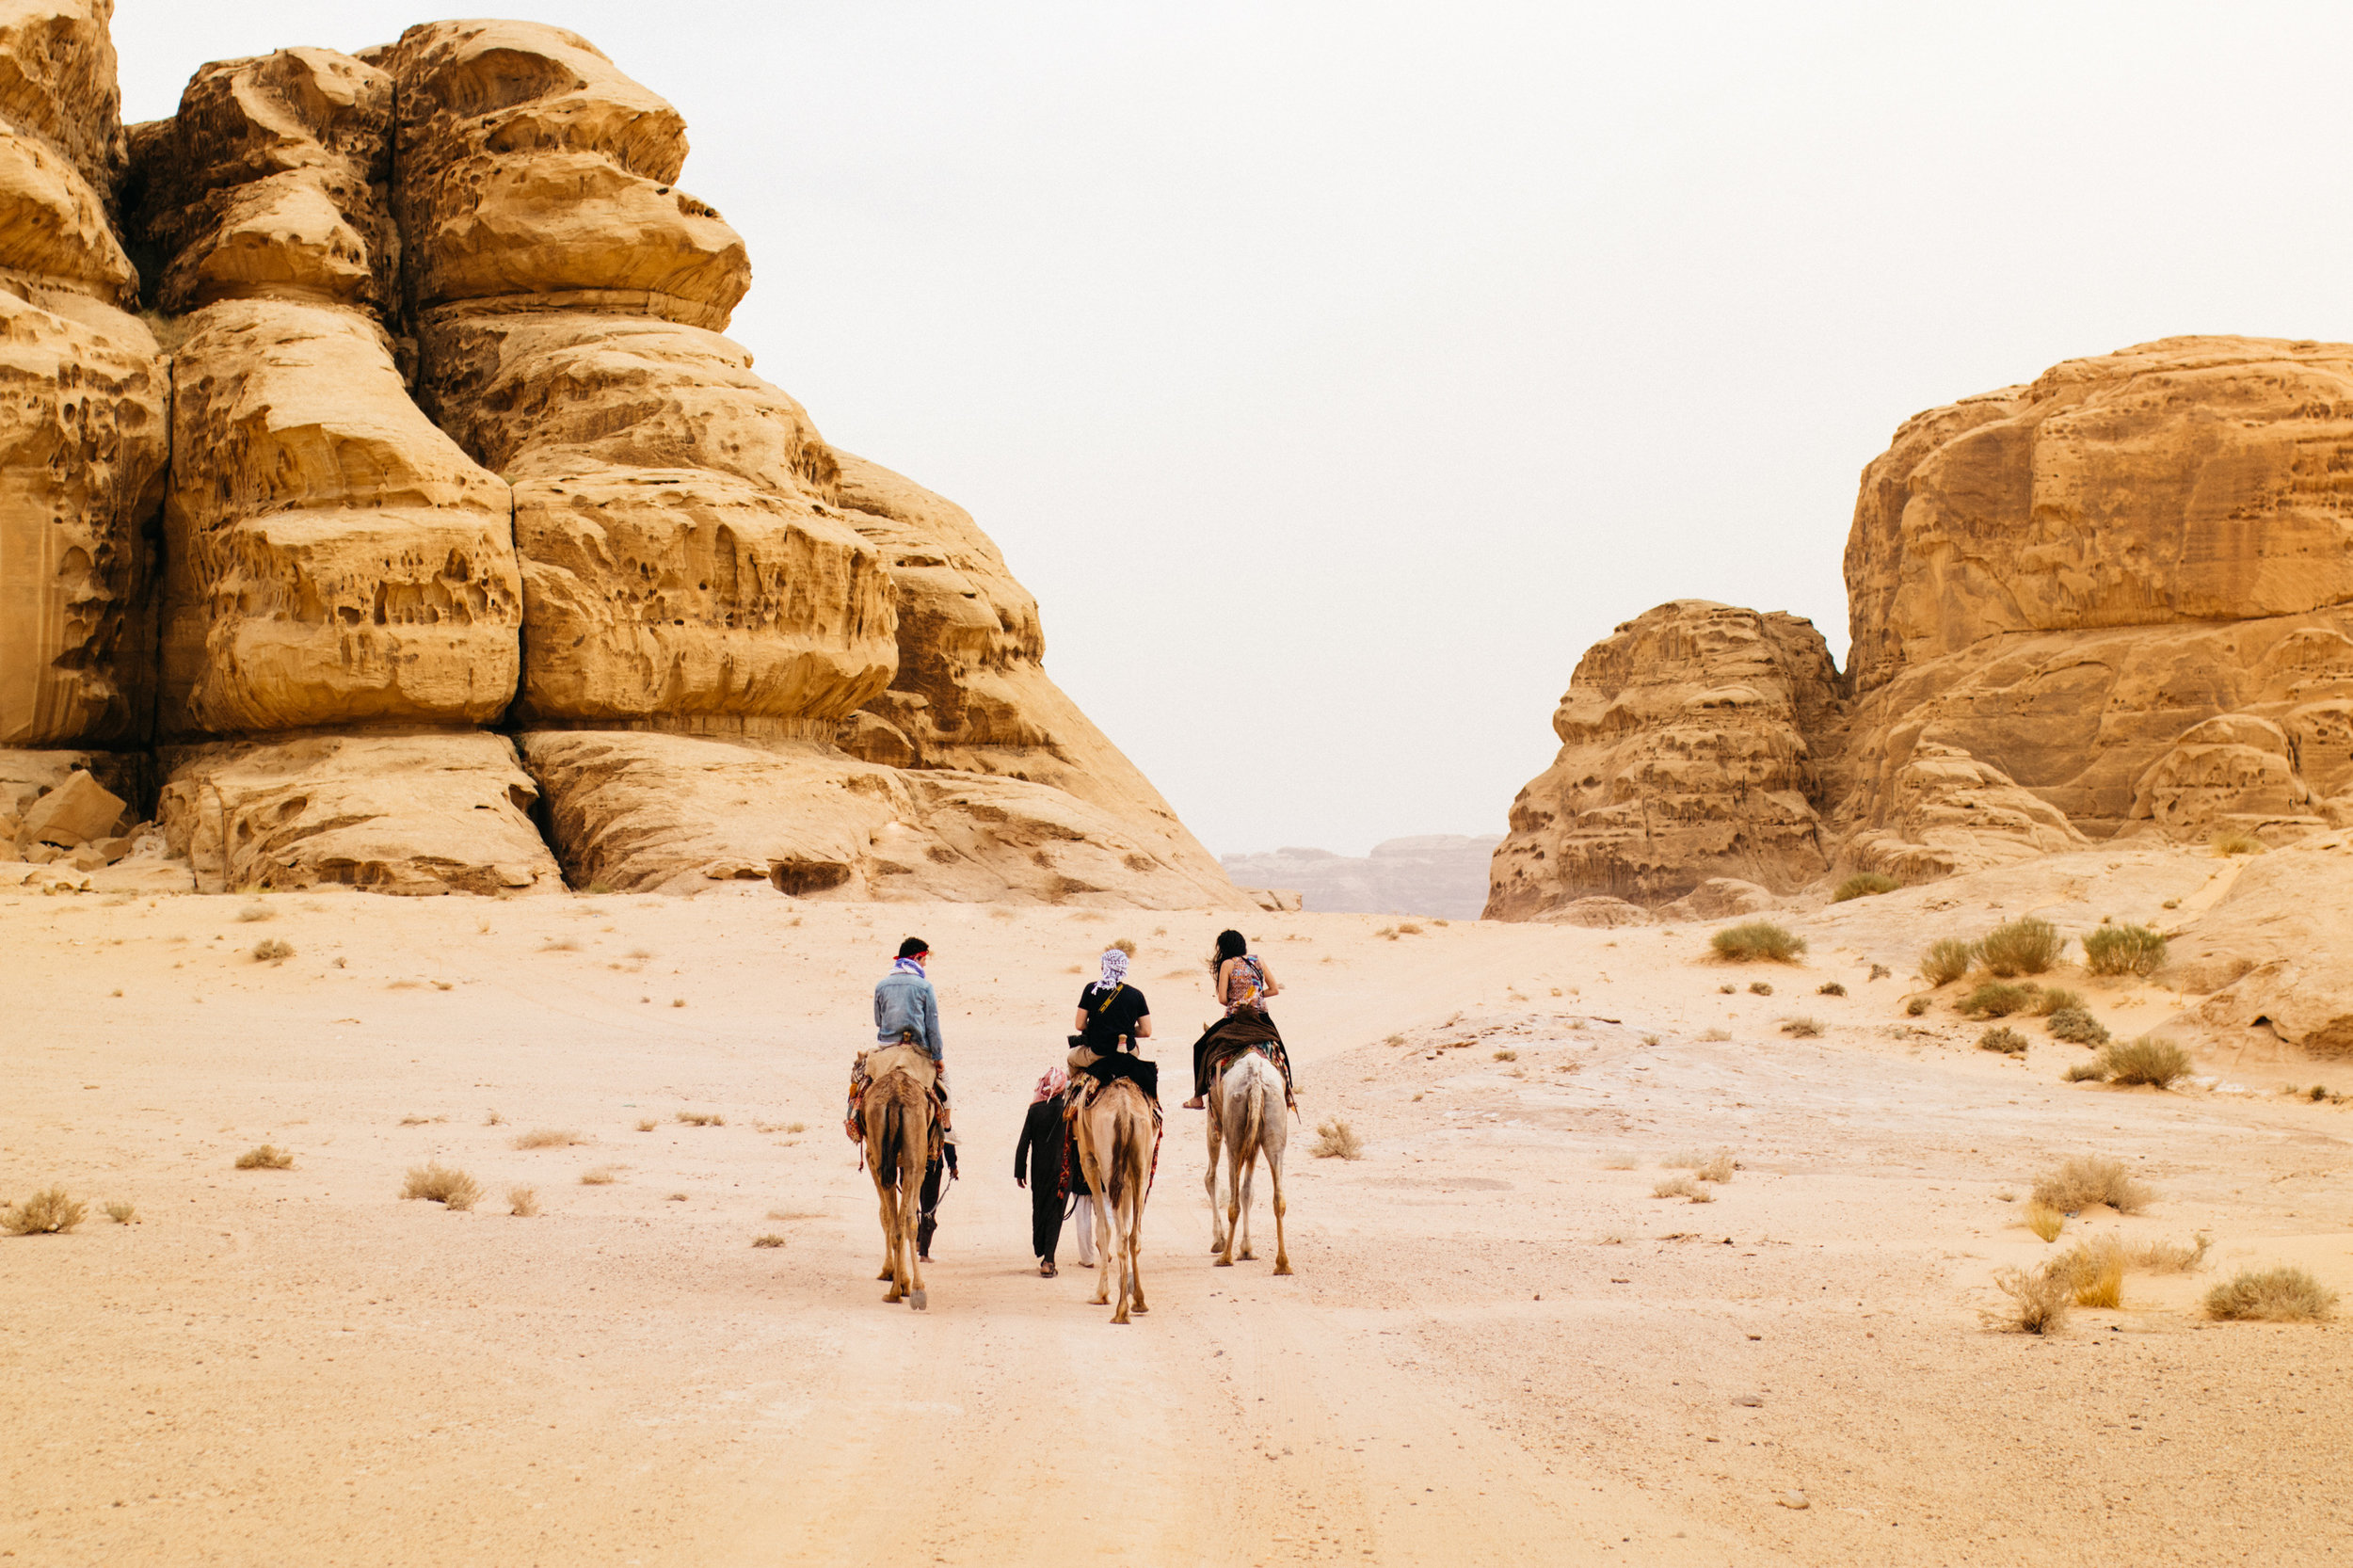 Click here to see the past movies in Jordan!